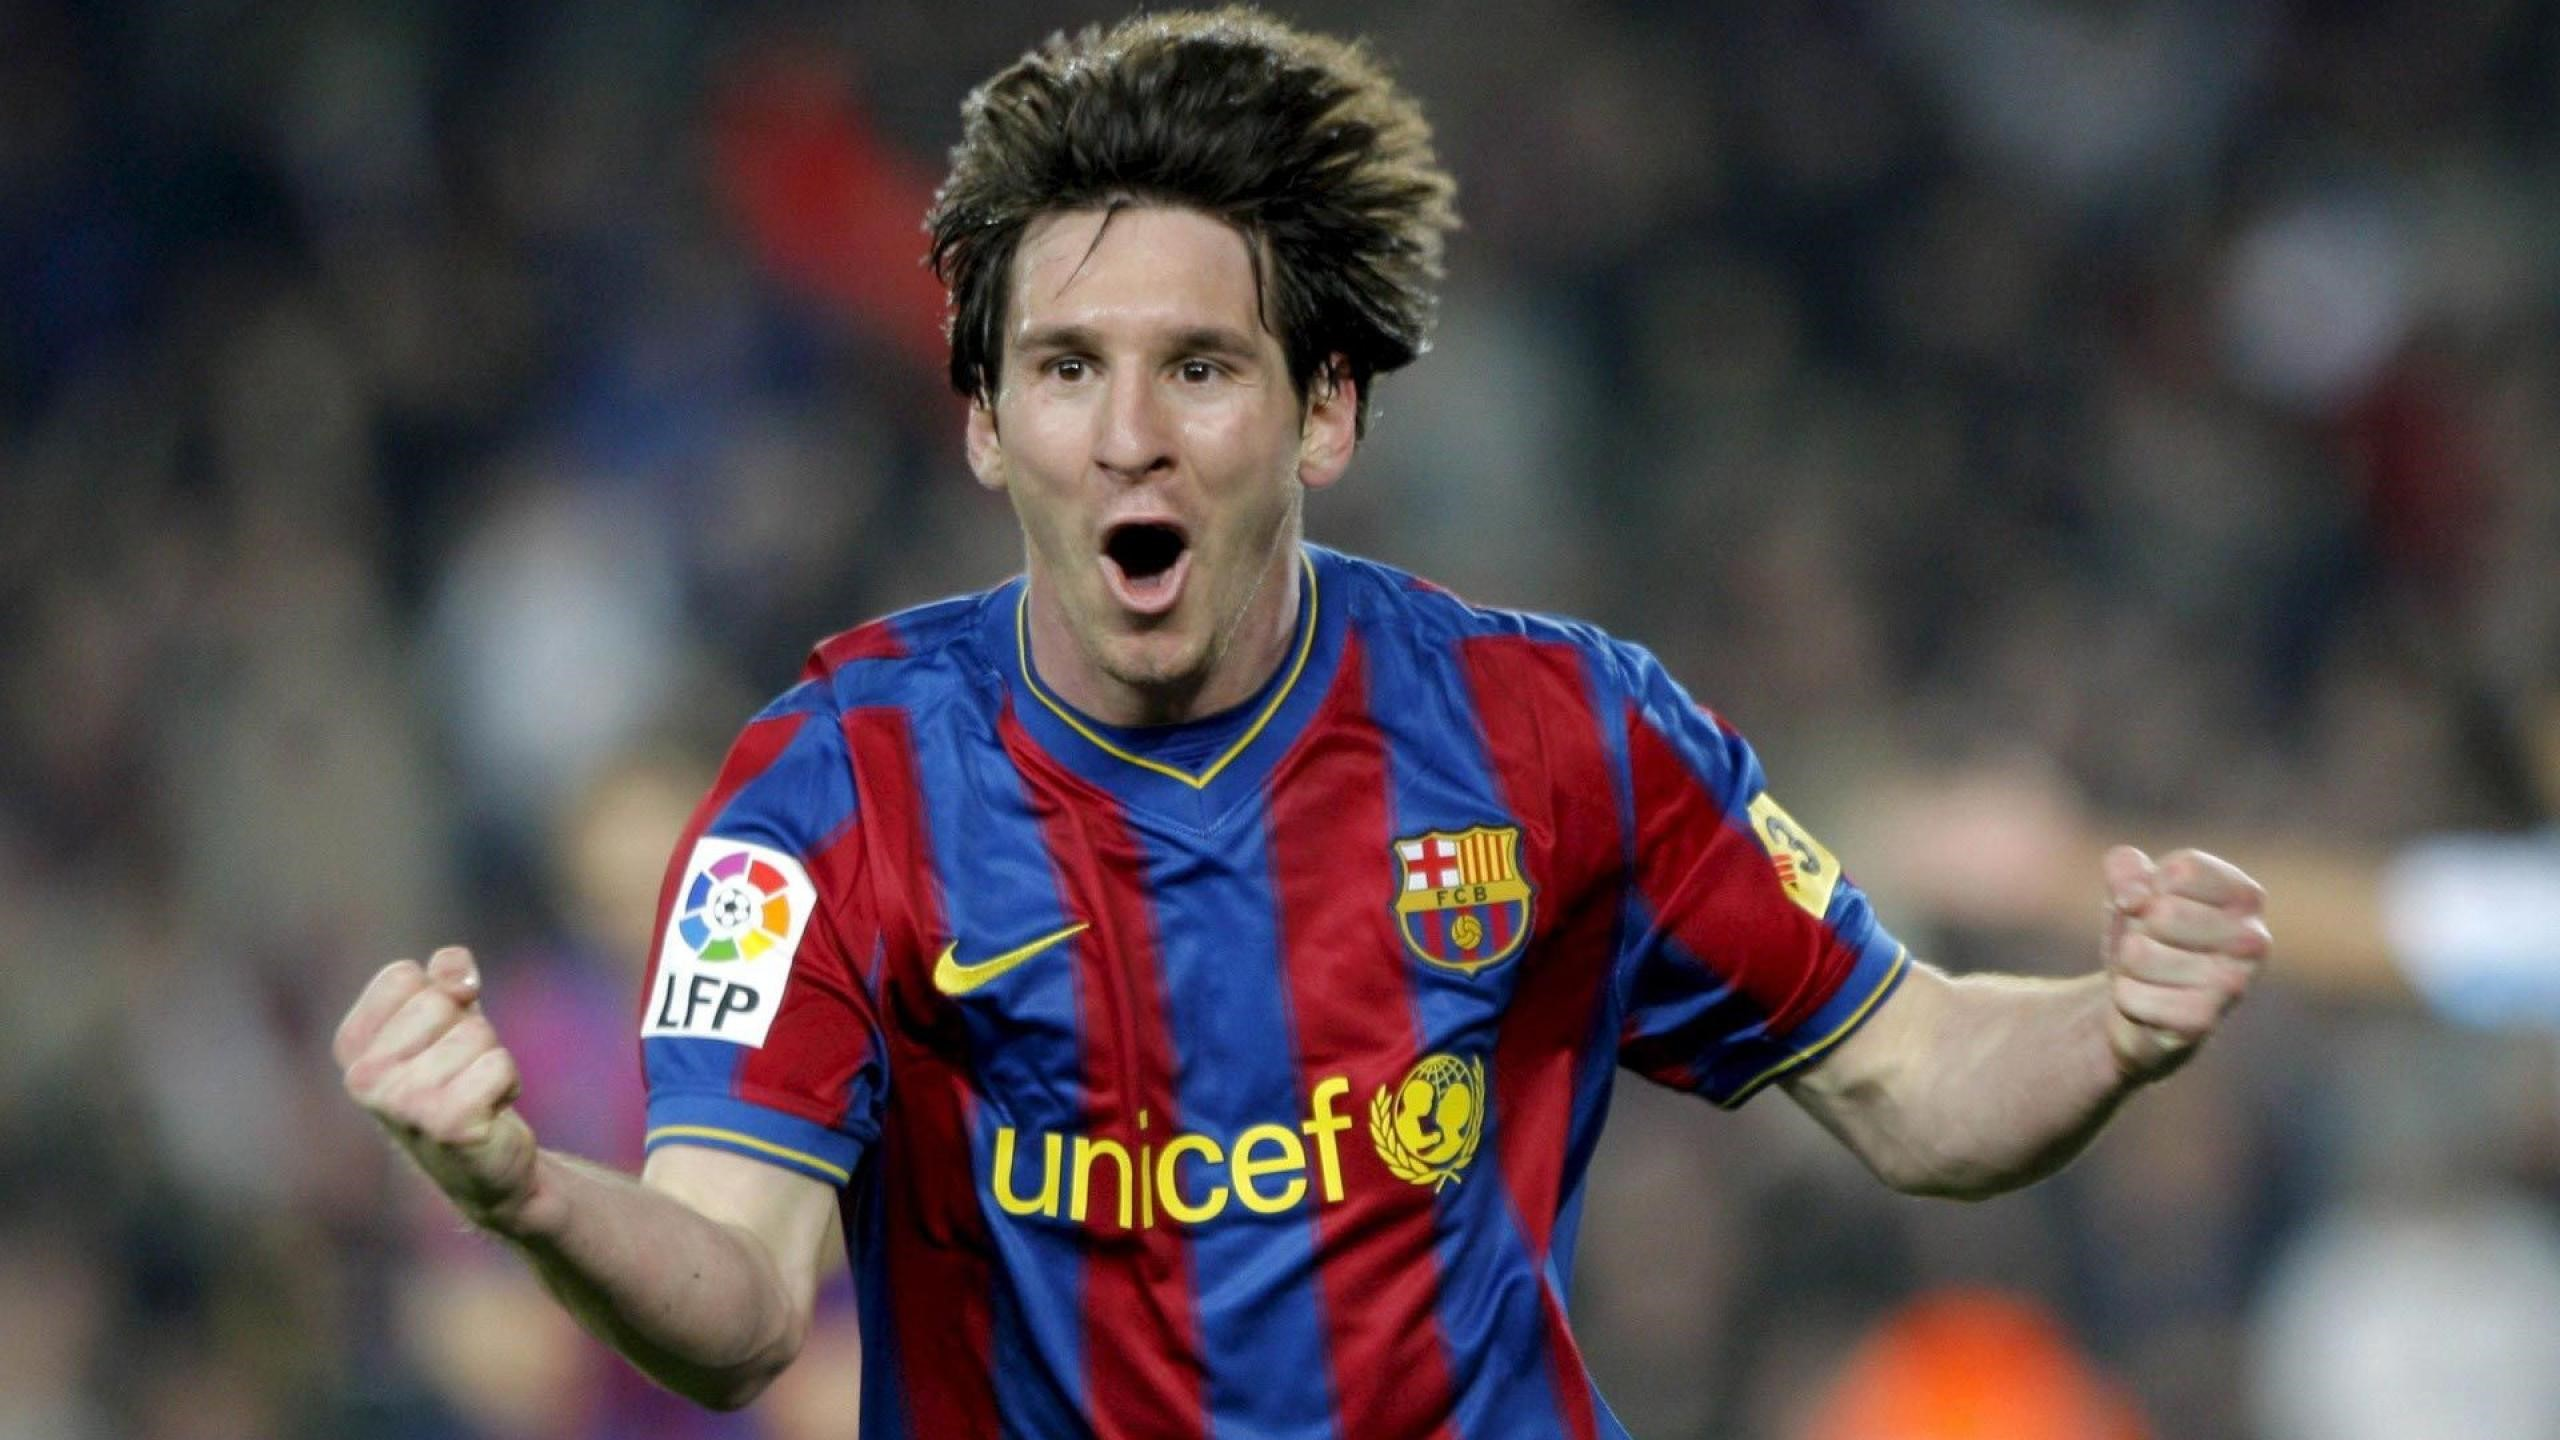 Lionel Messi Best Football Player Wallpaper HD Wallpapers 2560x1440